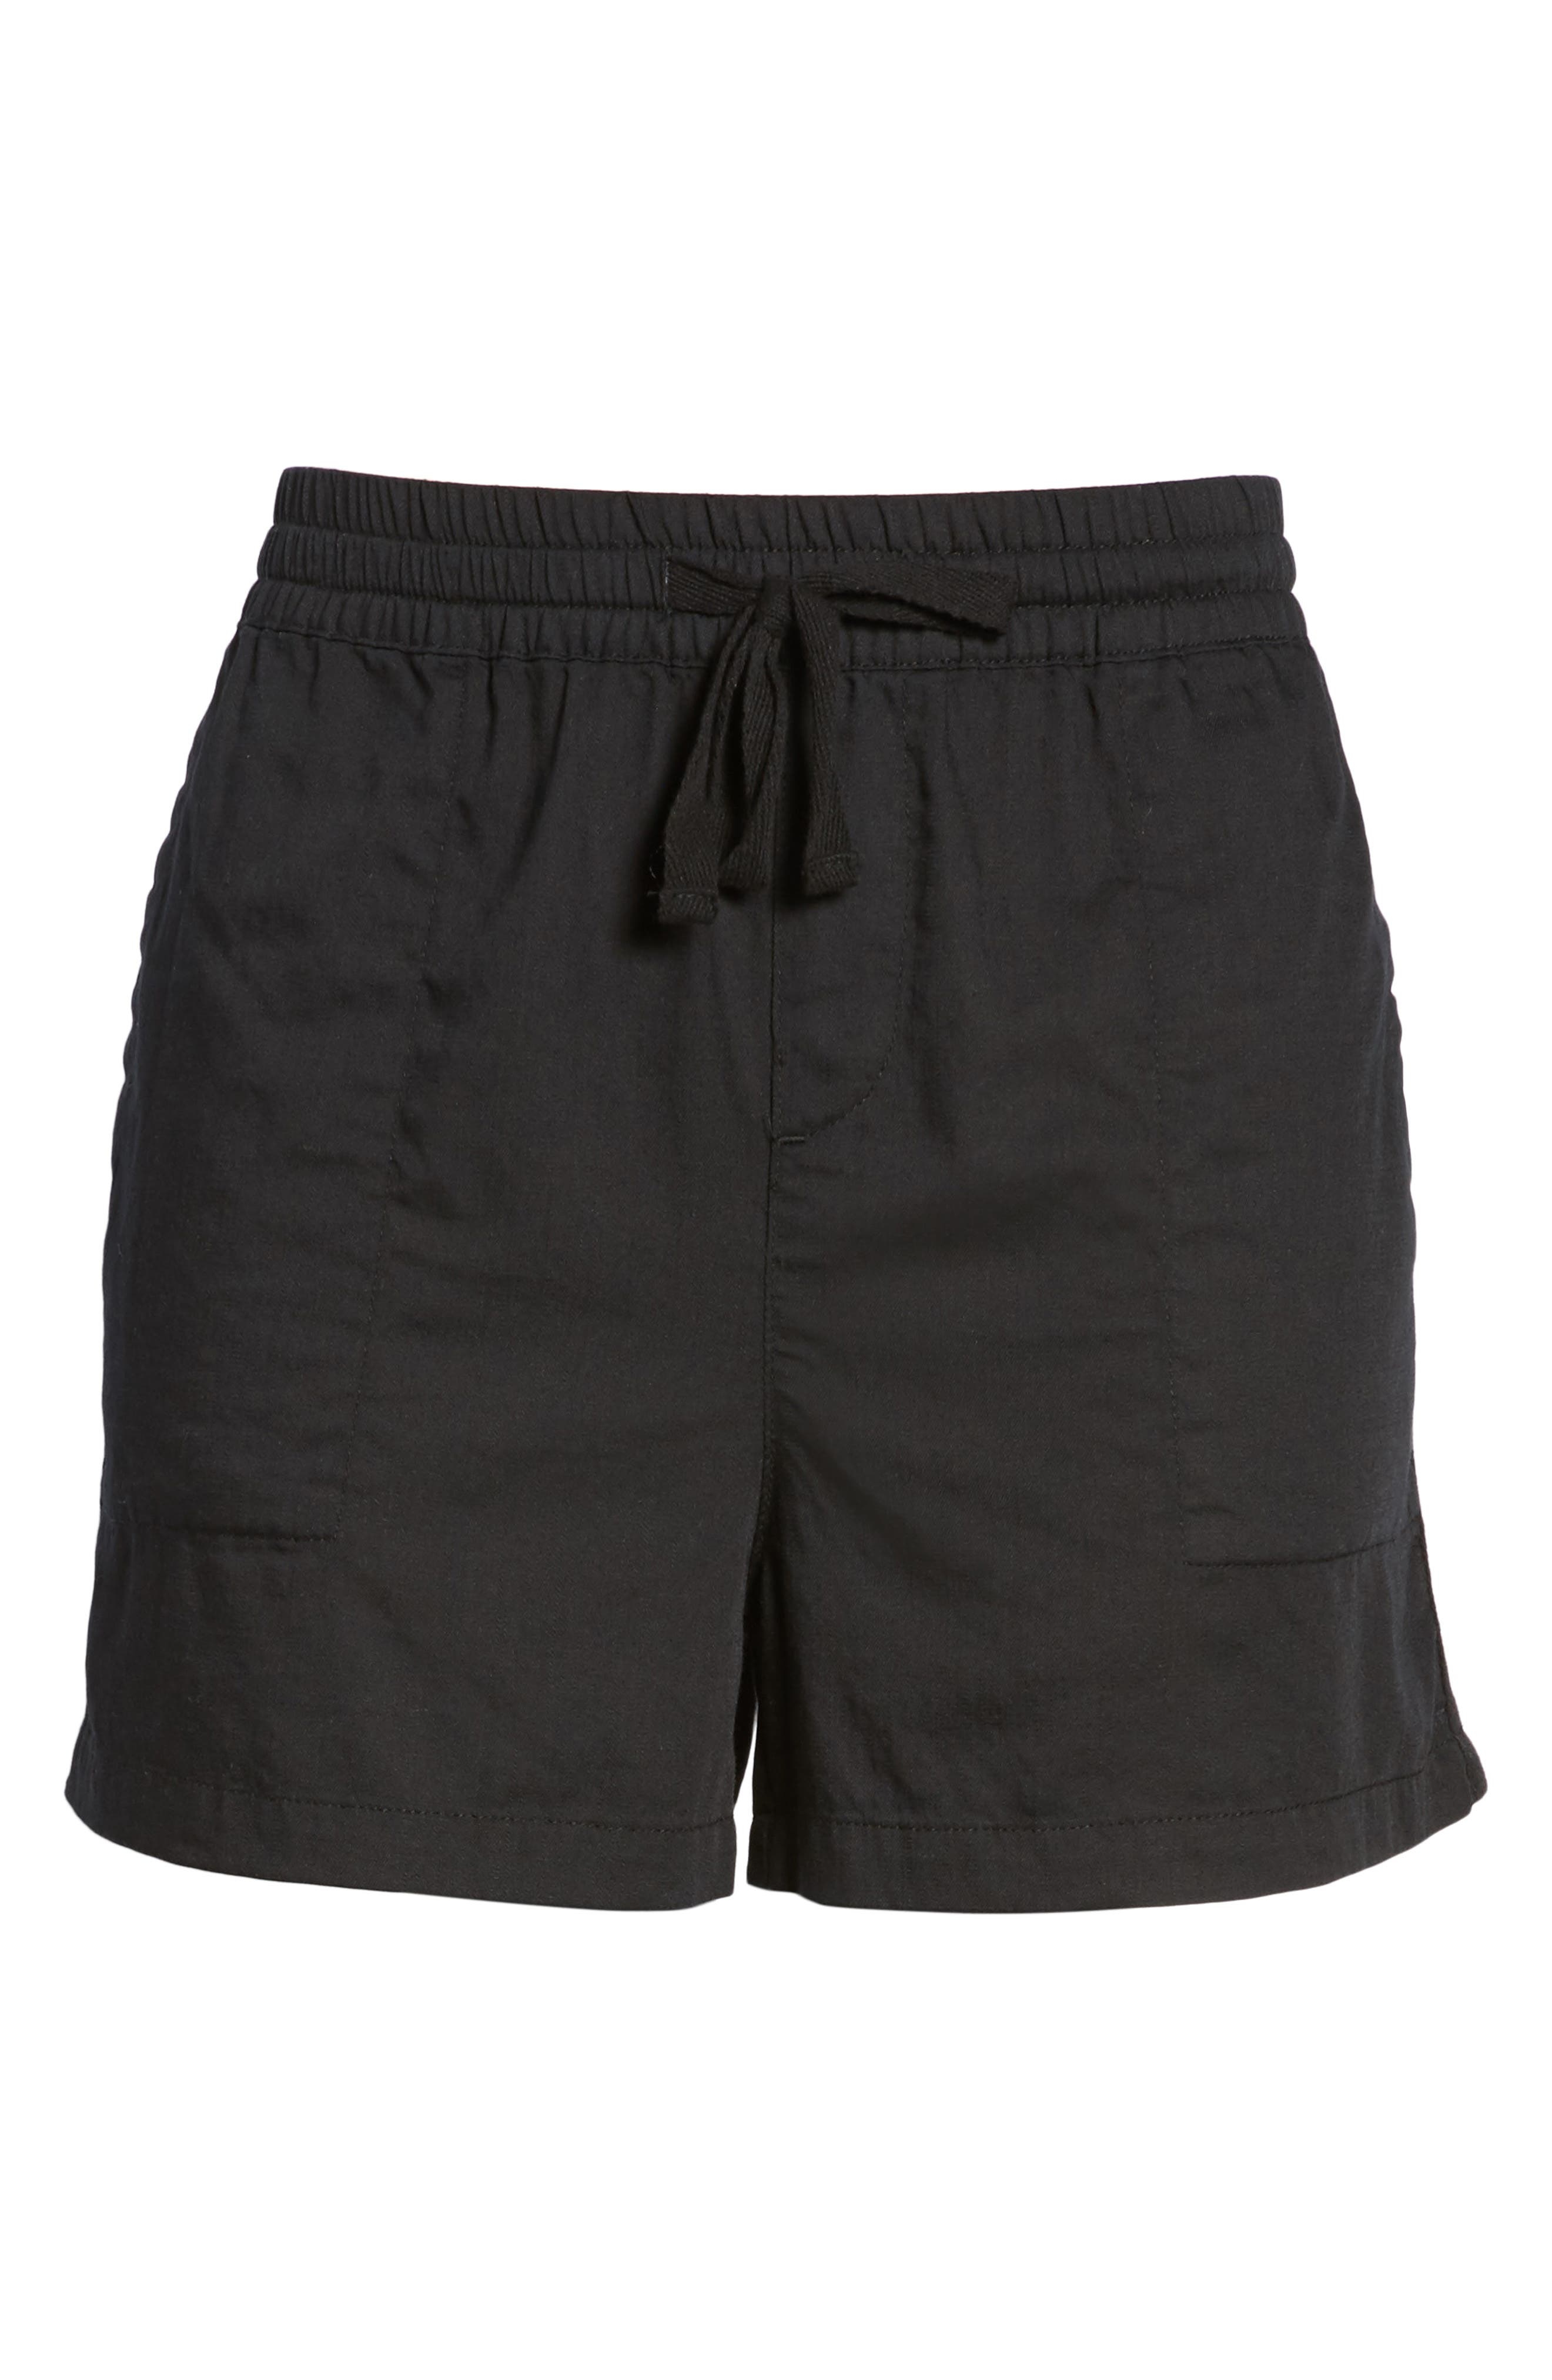 Pull-On Twill Shorts,                             Alternate thumbnail 6, color,                             001